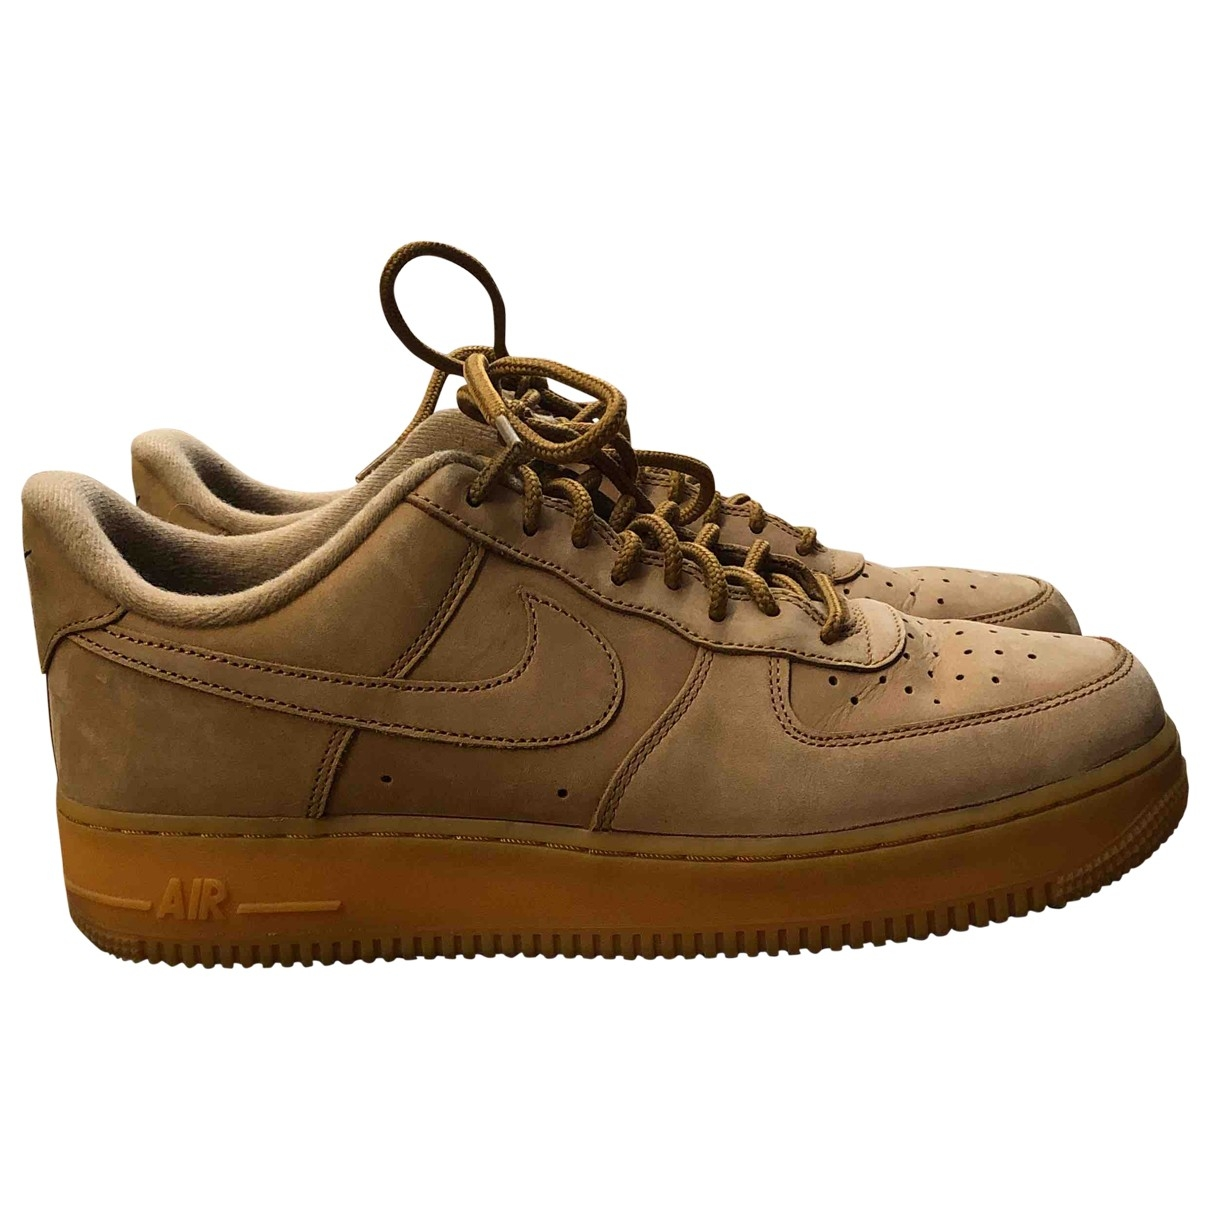 Nike Air Force 1 Camel Leather Trainers for Men 42.5 EU